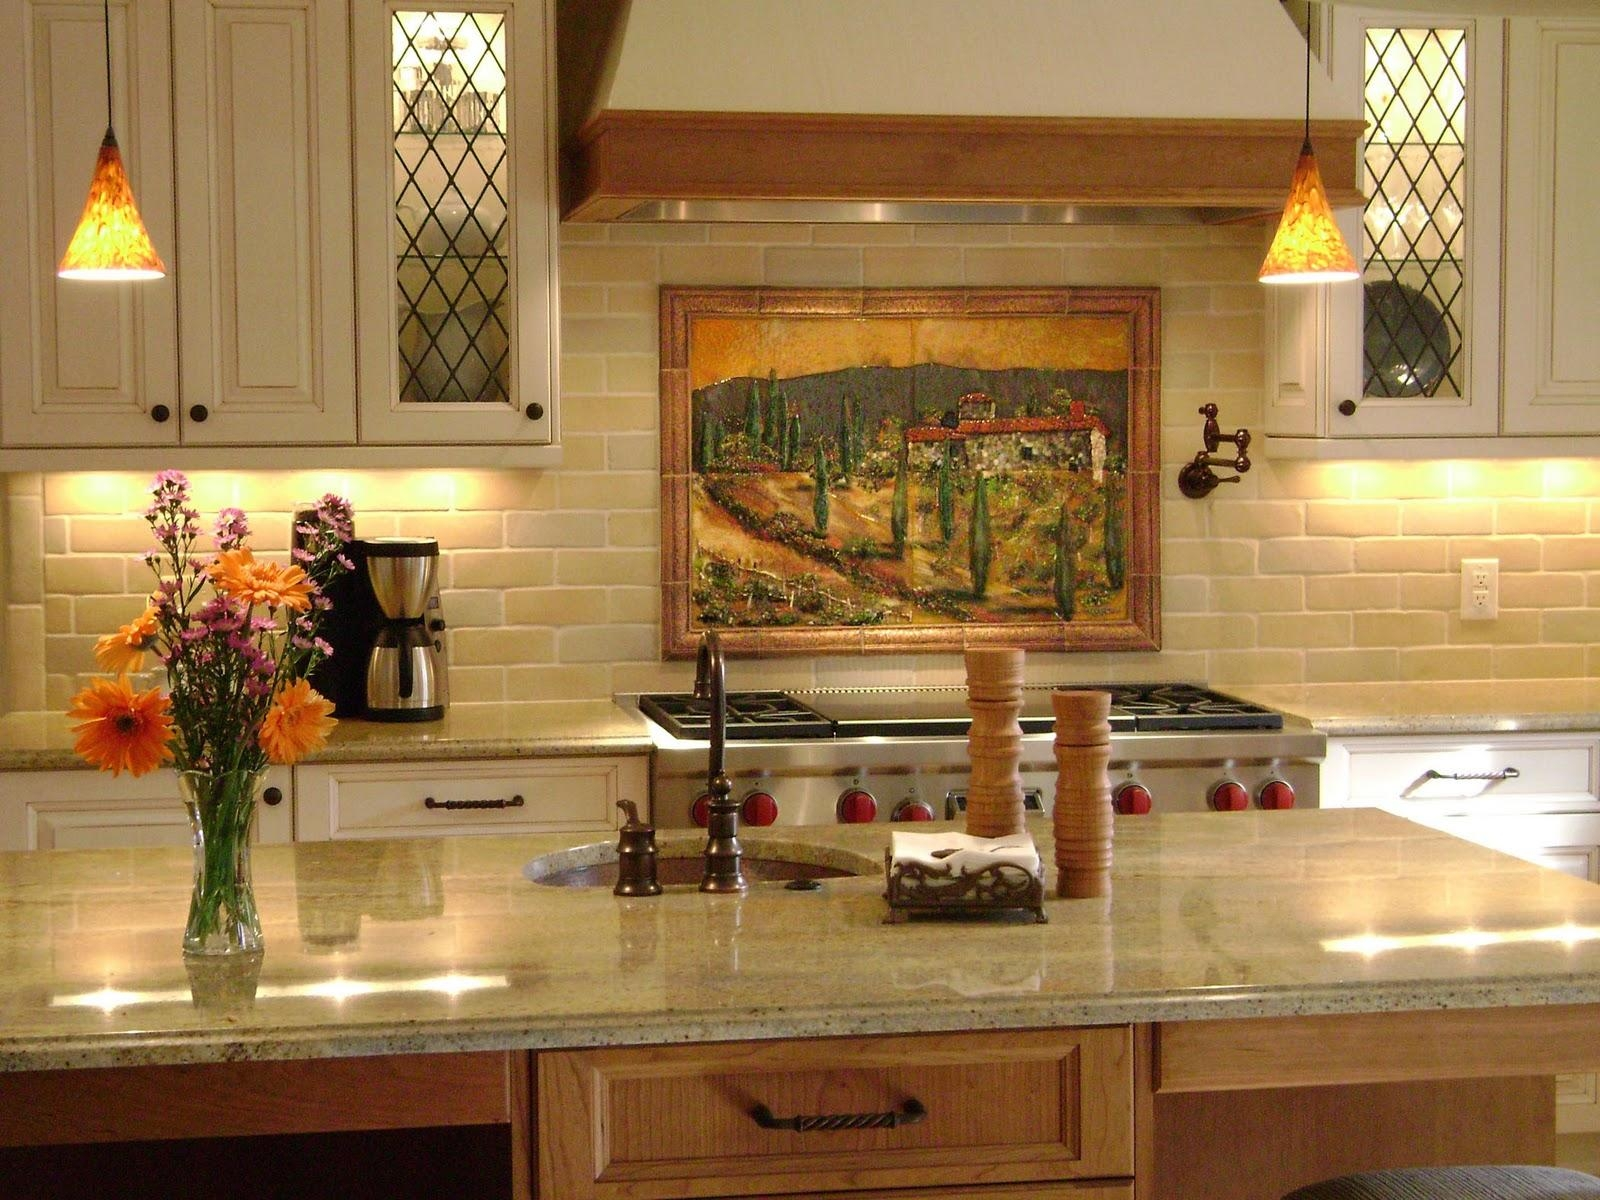 Italian Art Tuscan Kitchen Wall Decor Ideas Inexpensive Tuscan Pertaining To Italian Inspired Wall Art (Image 11 of 20)